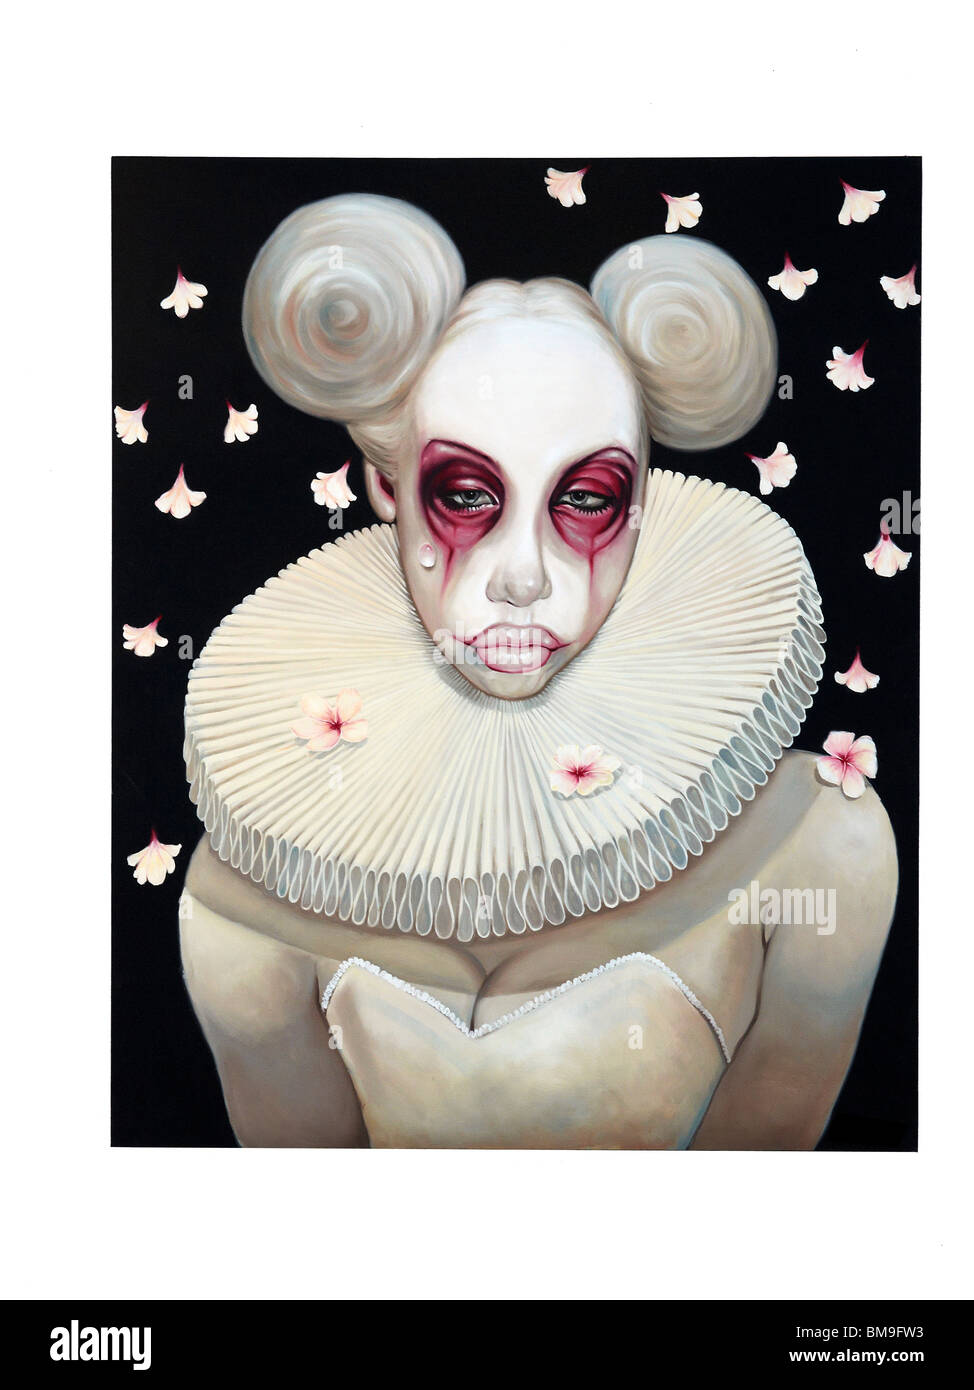 Fantasy art painting of a white female clown with sad face. - Stock Image